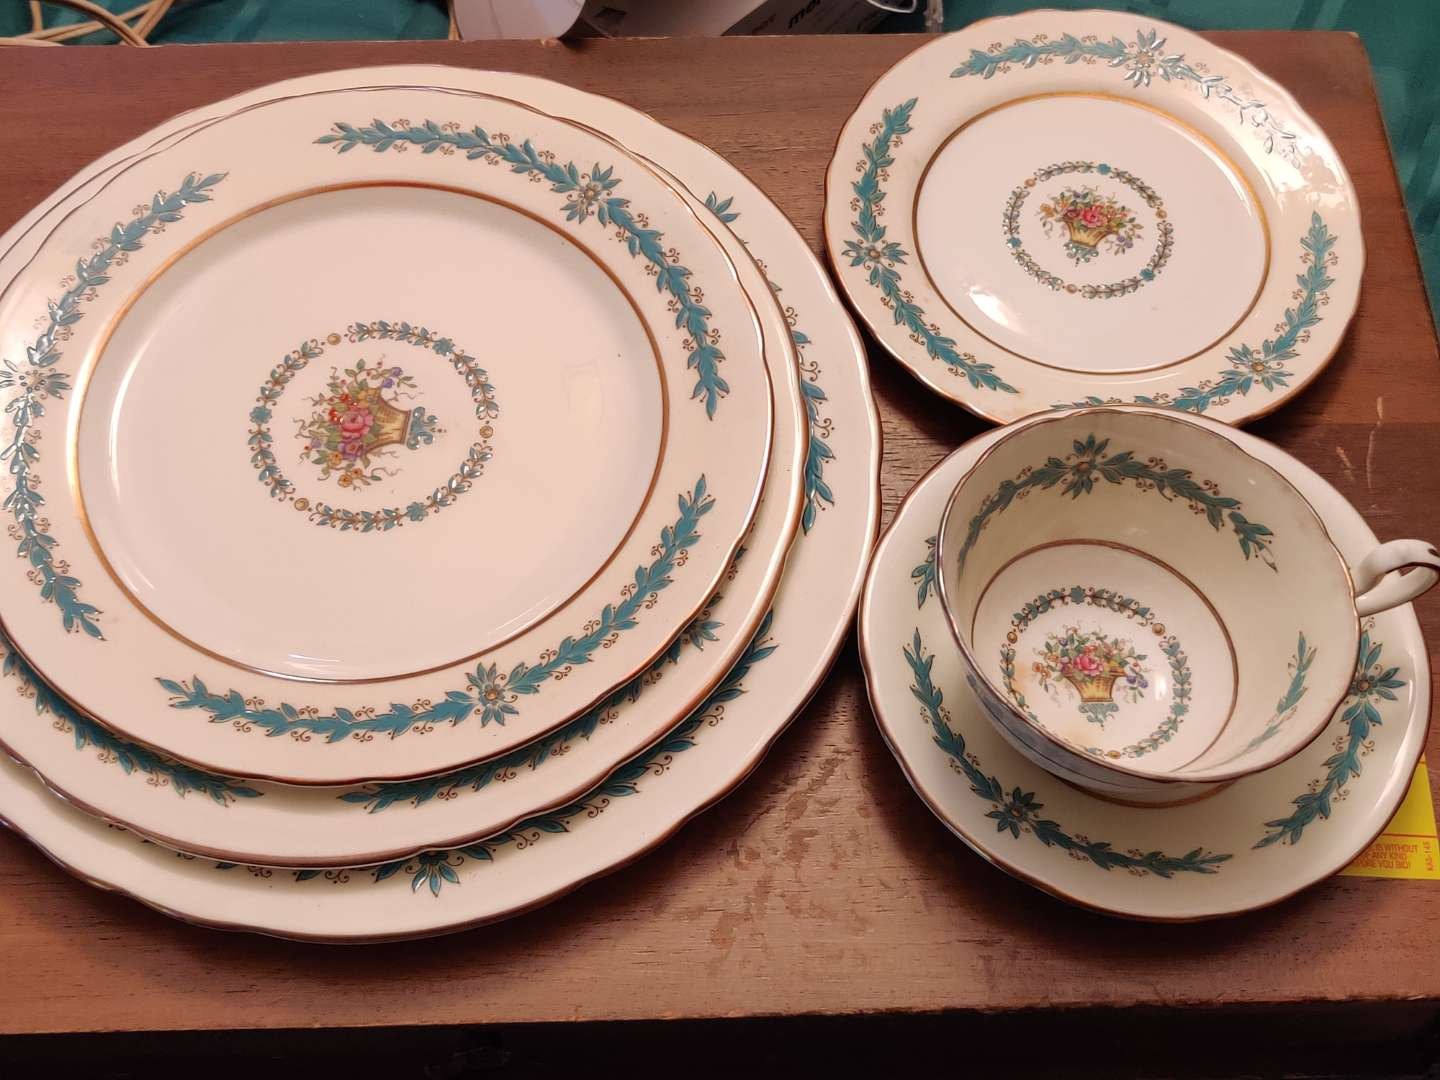 # 140 Aynsley Cambridge pattern China six pieces in great condition